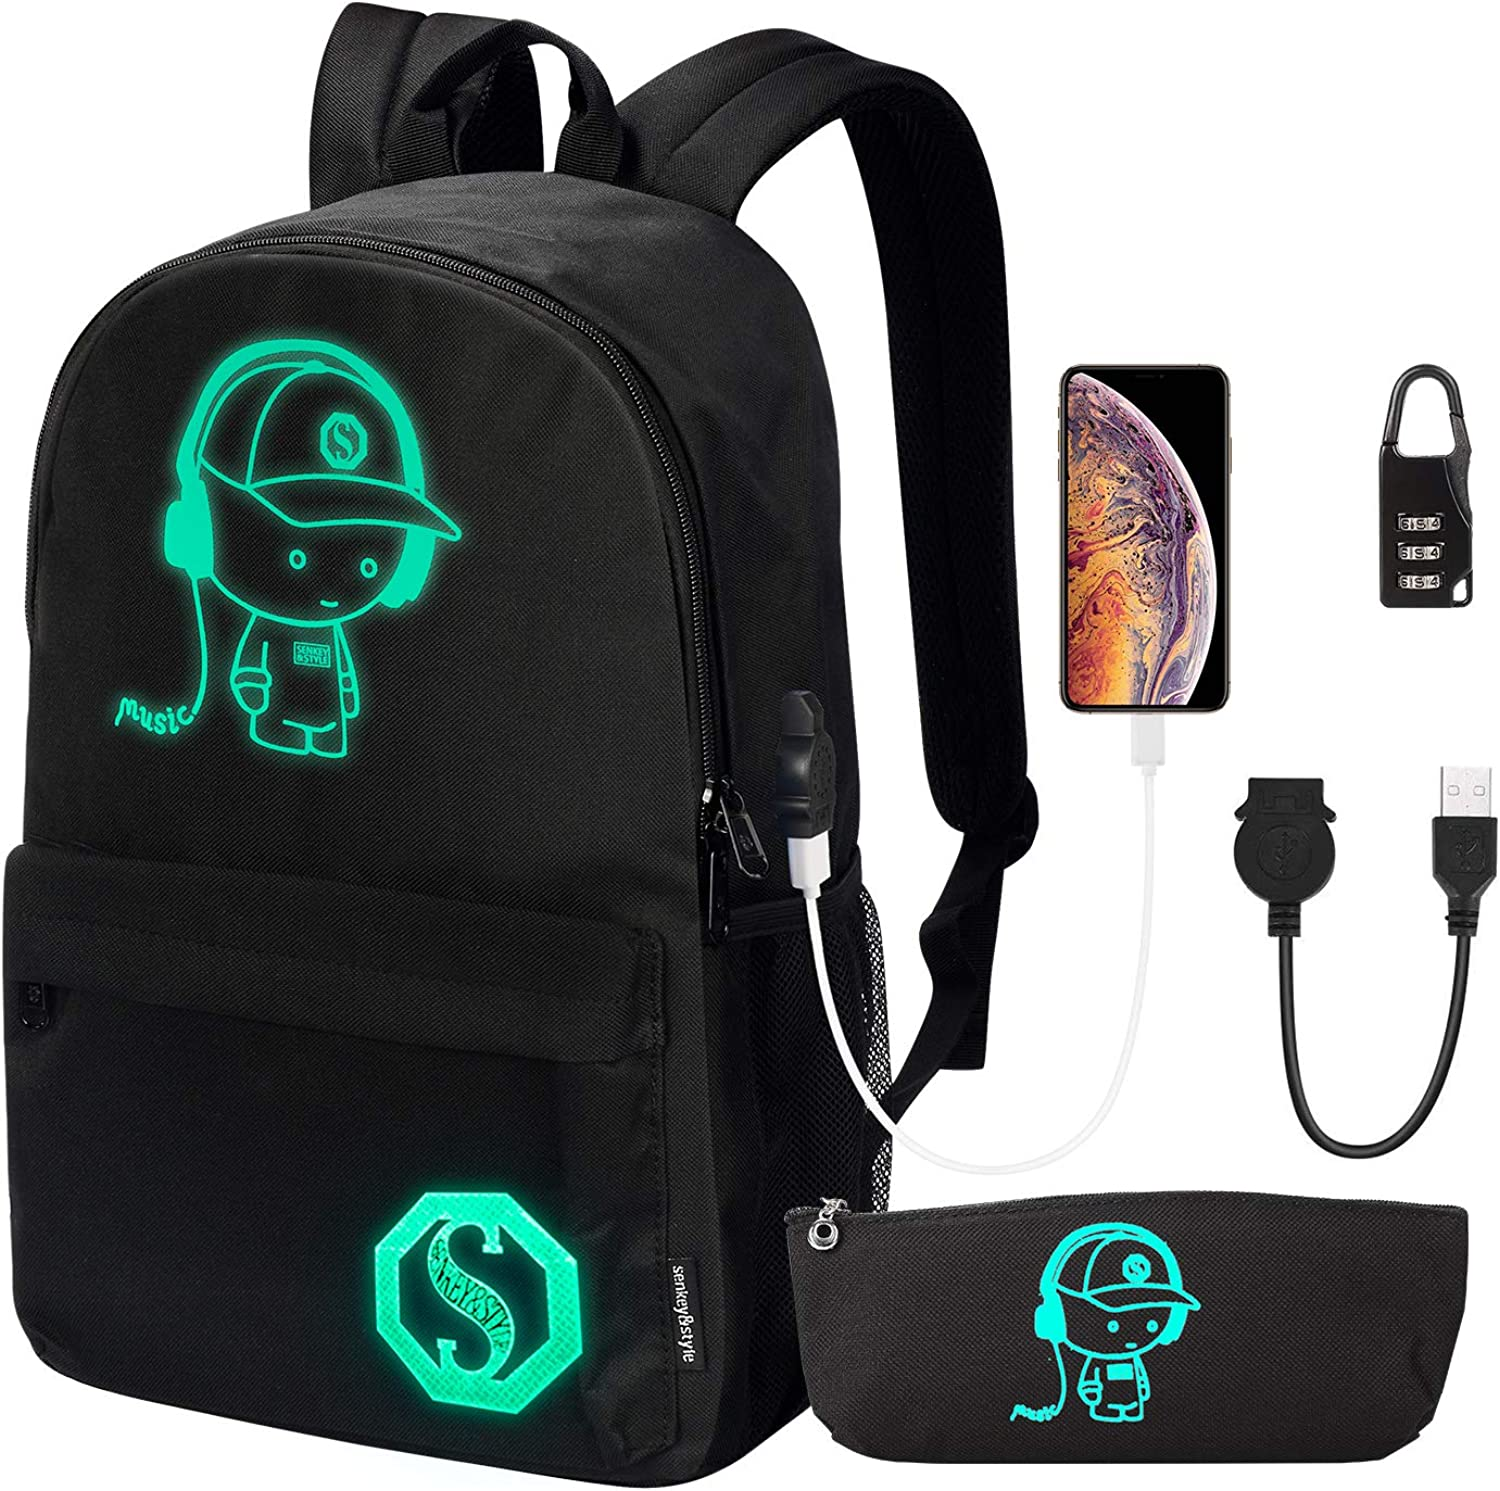 School Backpack, Anime Luminous Backpack College Bookbag Anti-Theft Laptop Backpack with USB Charging Port and Lock & Pencil Case, Unisex School Backpack for Teen Boys and Girls, Black